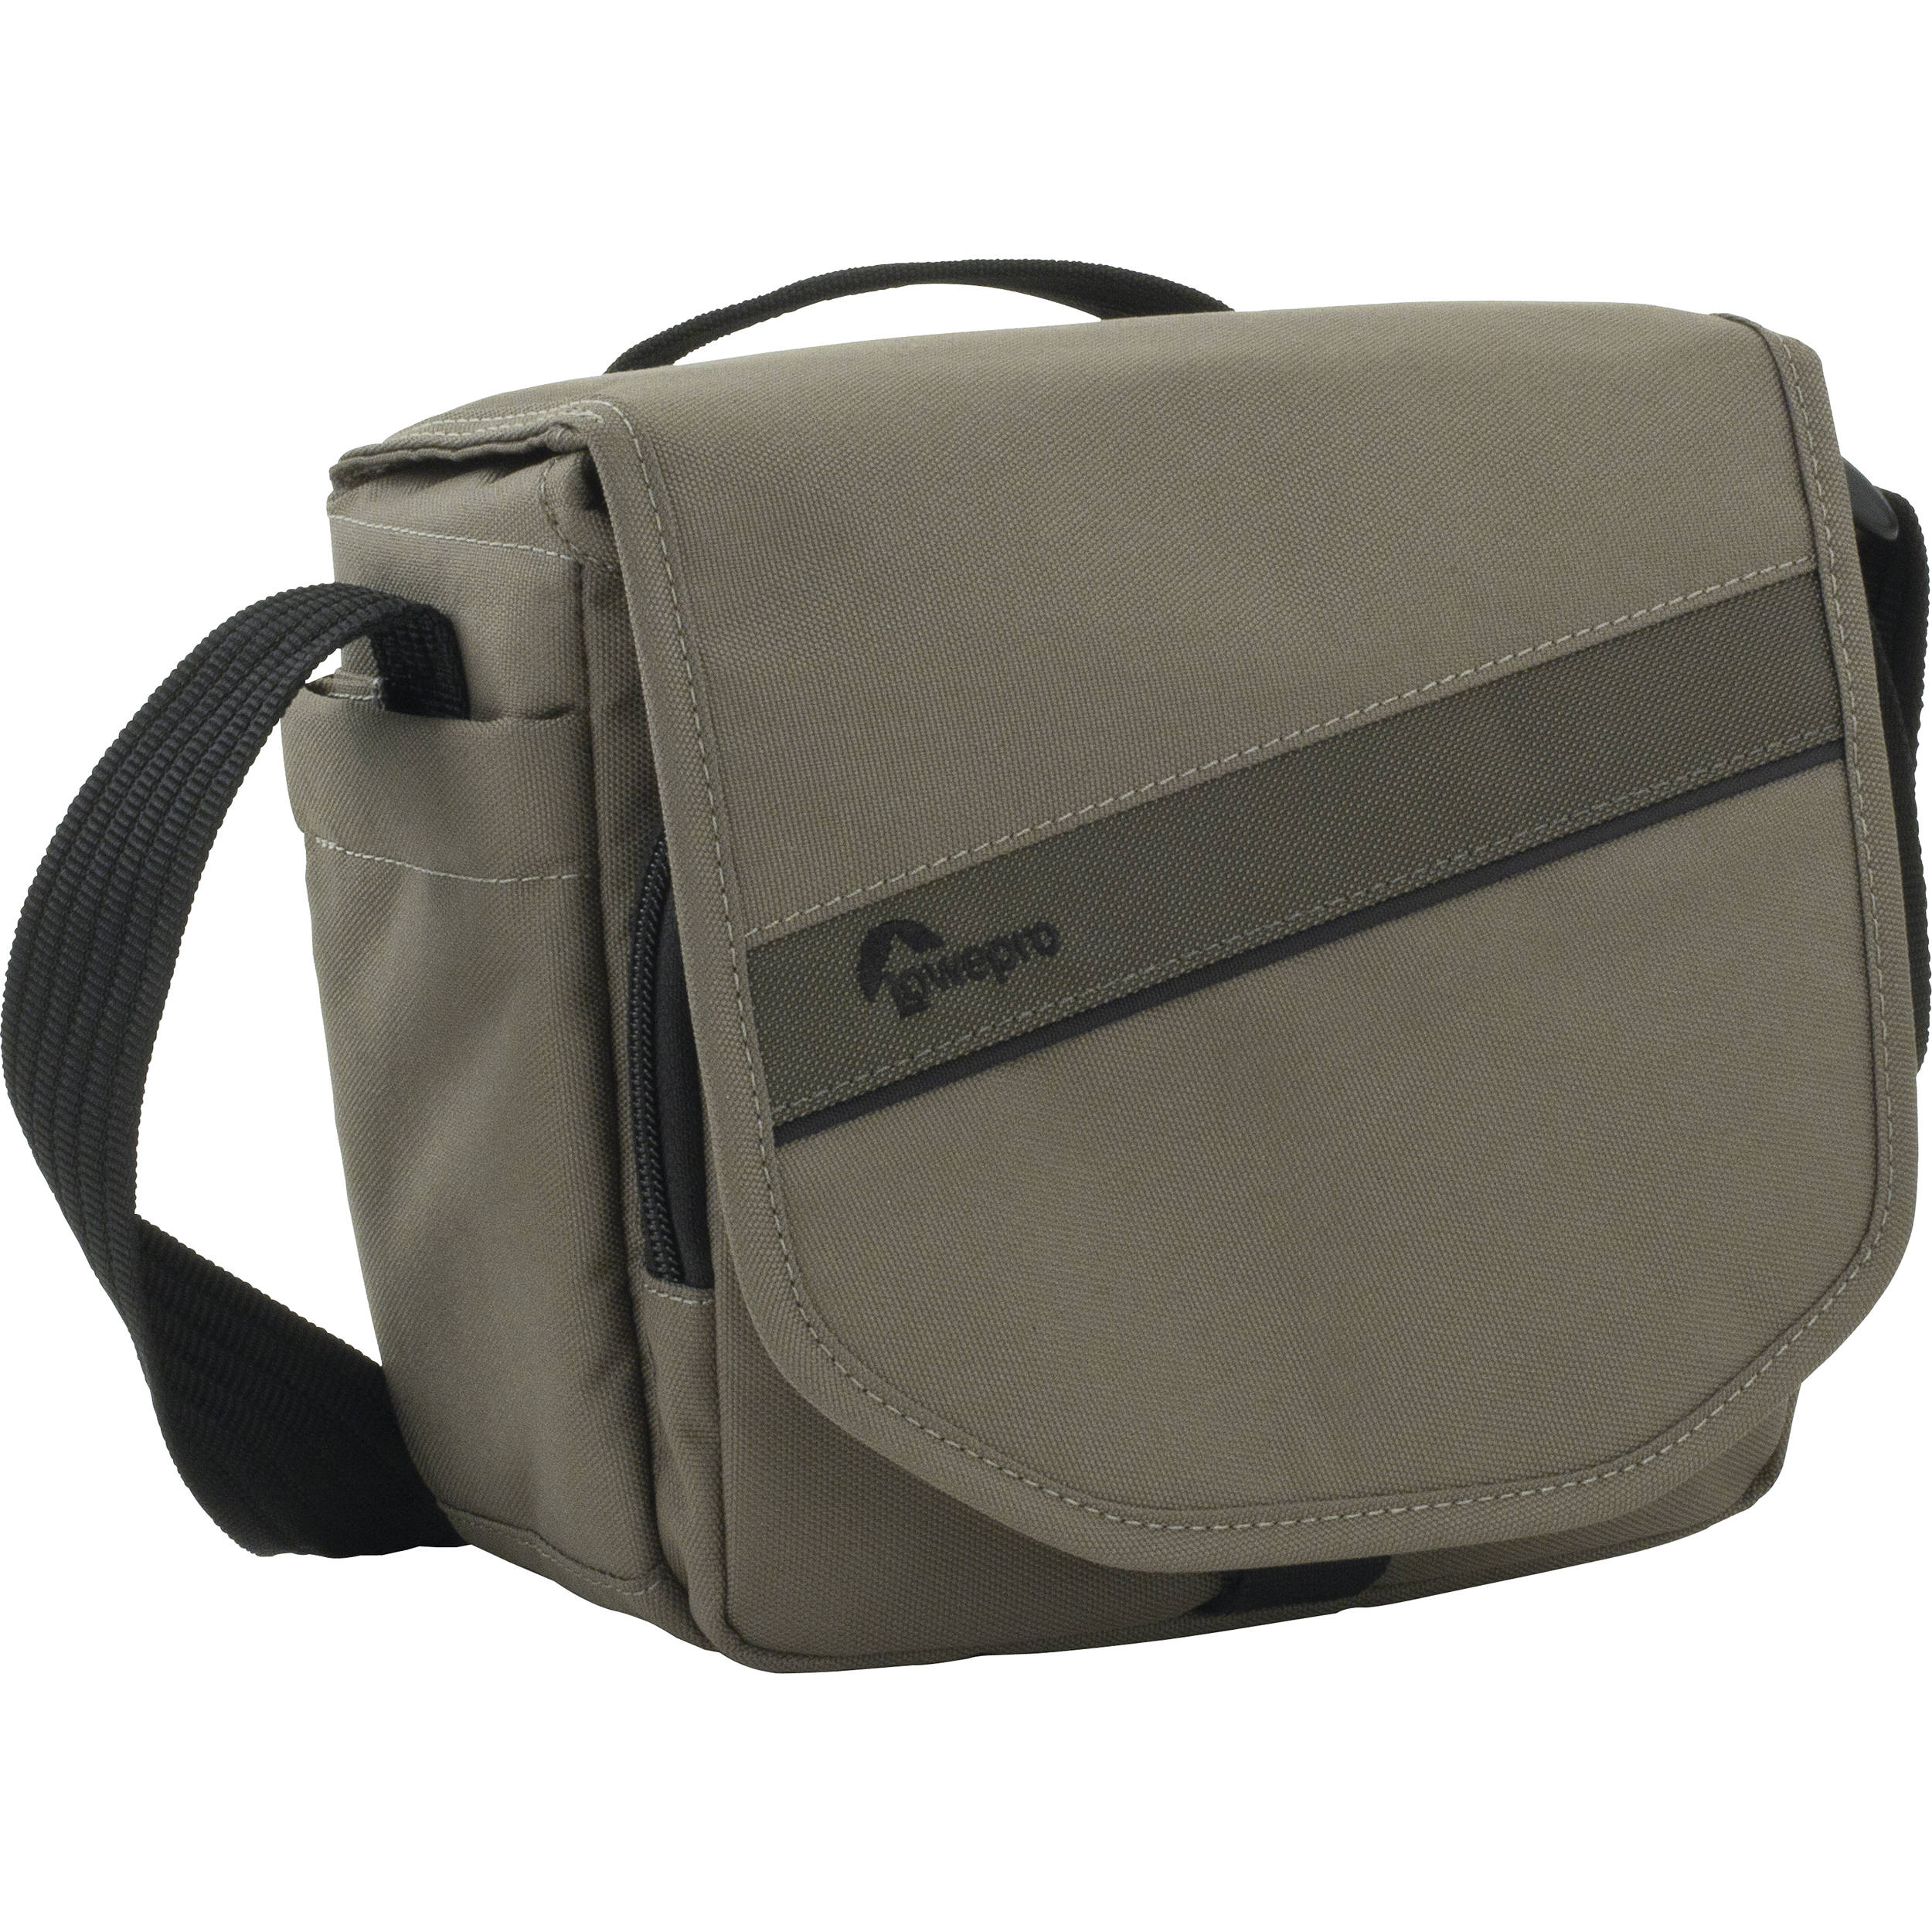 Lowepro Event Messenger 100 Small Shoulder Camera Bag 11